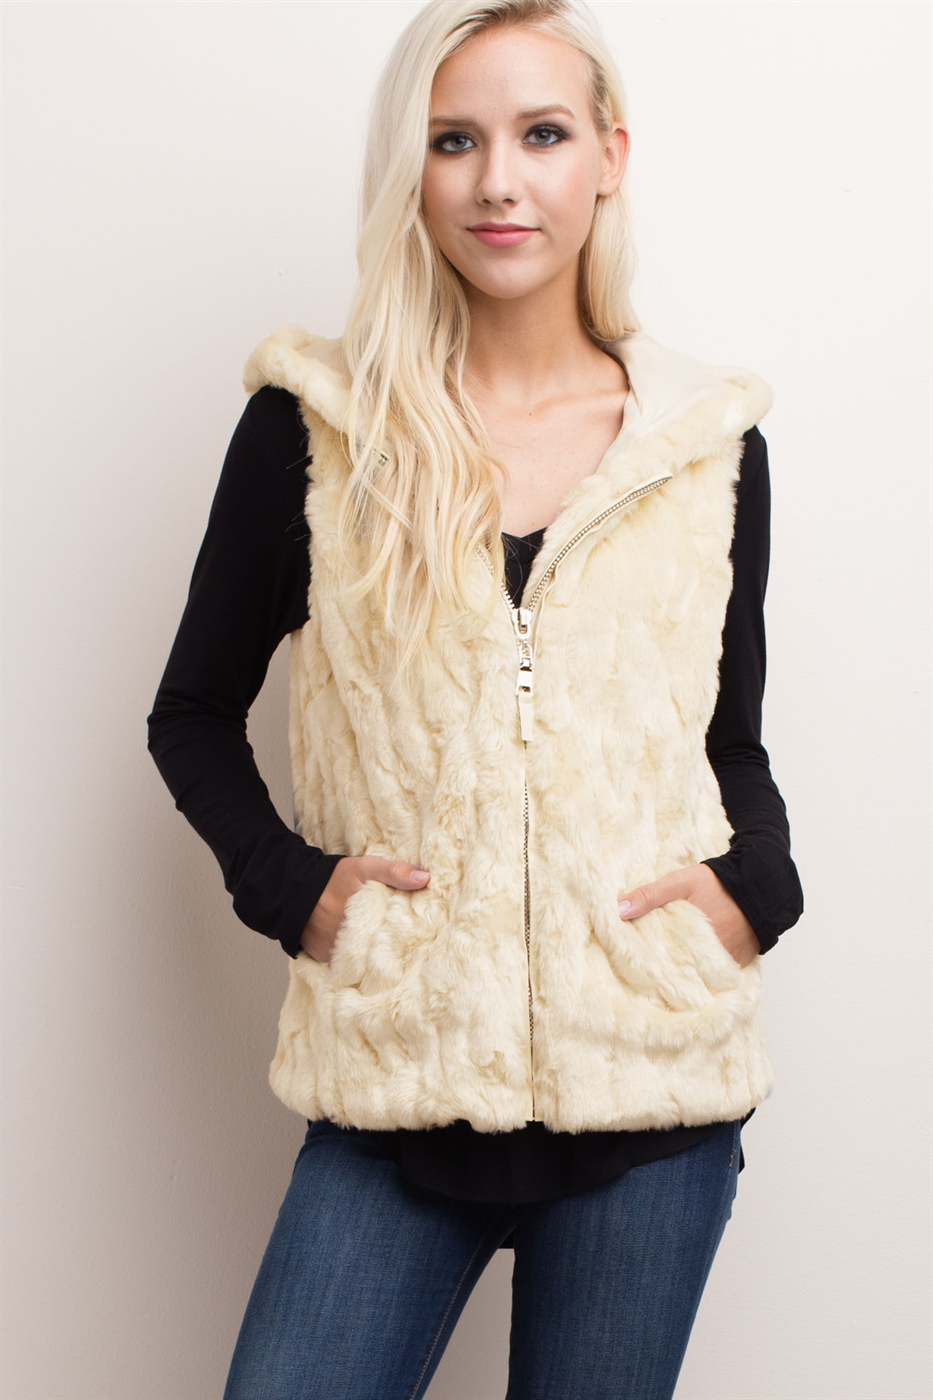 HOODED ZIPPER FAUX FUR VEST - orangeshine.com